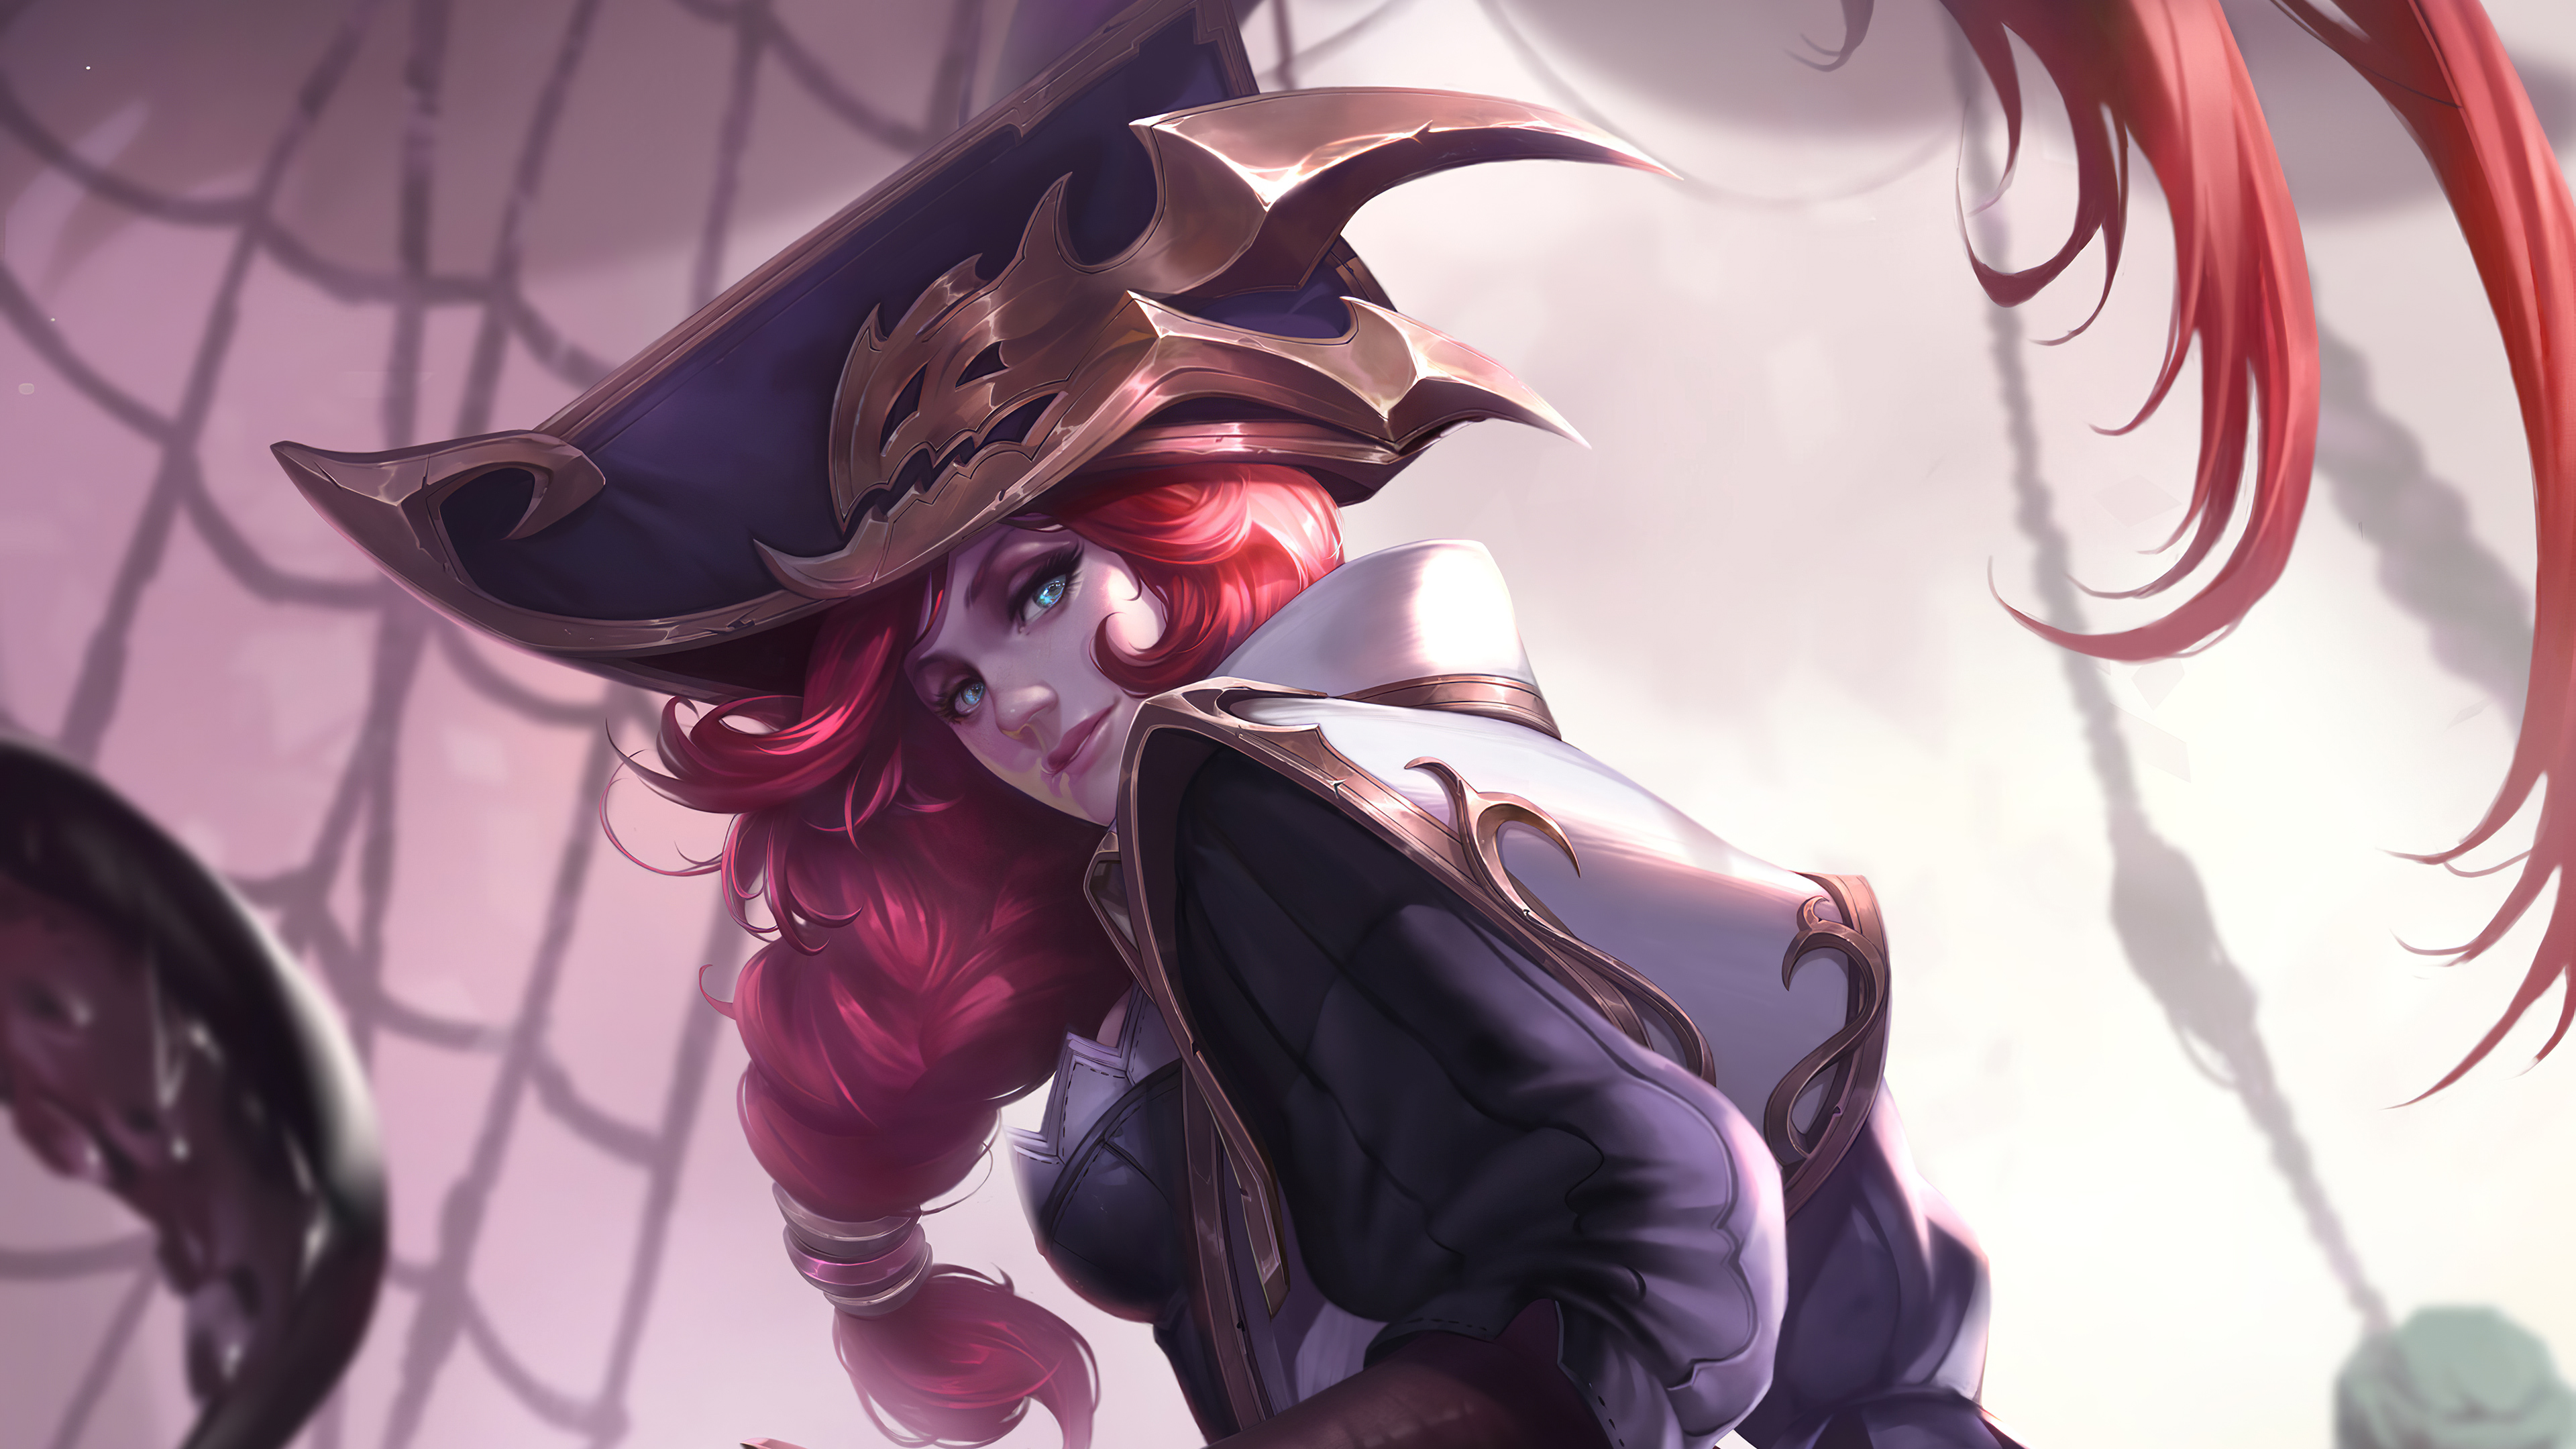 Miss Fortune Lol Art 4k Hd Games 4k Wallpapers Images